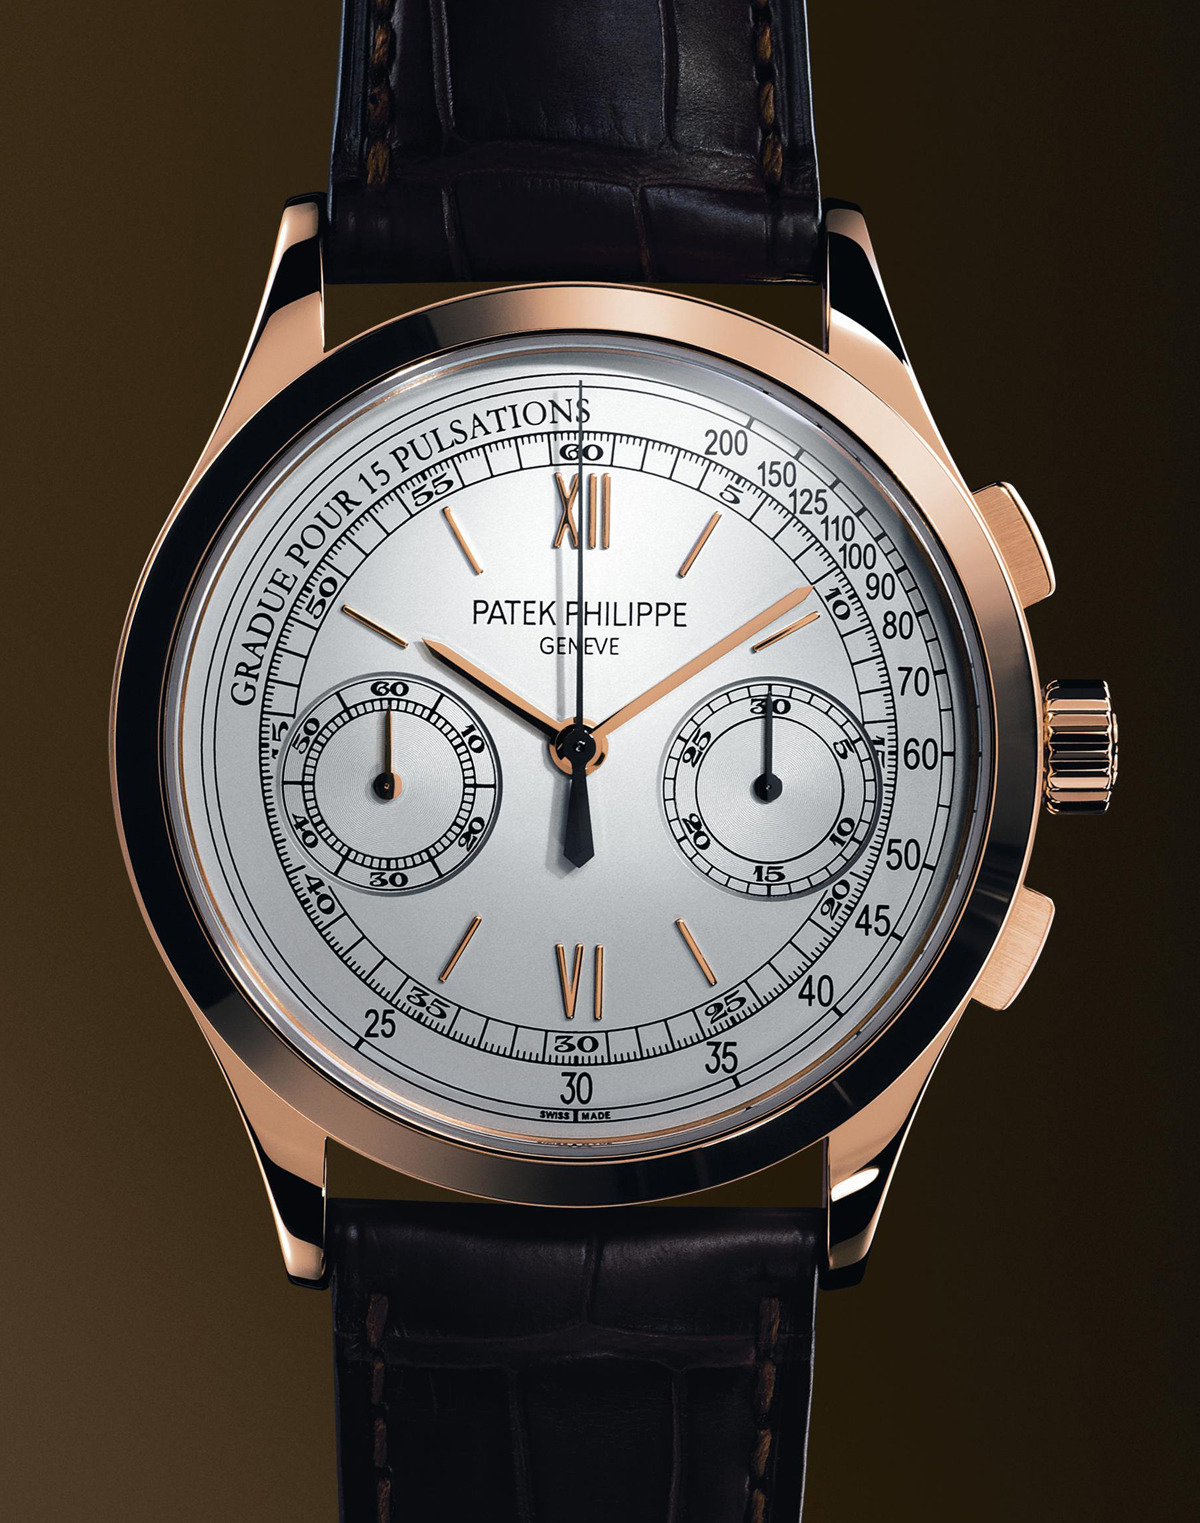 calasic watches  Basel World 2010- Patek Philippe Chronograph ... ab67b29011